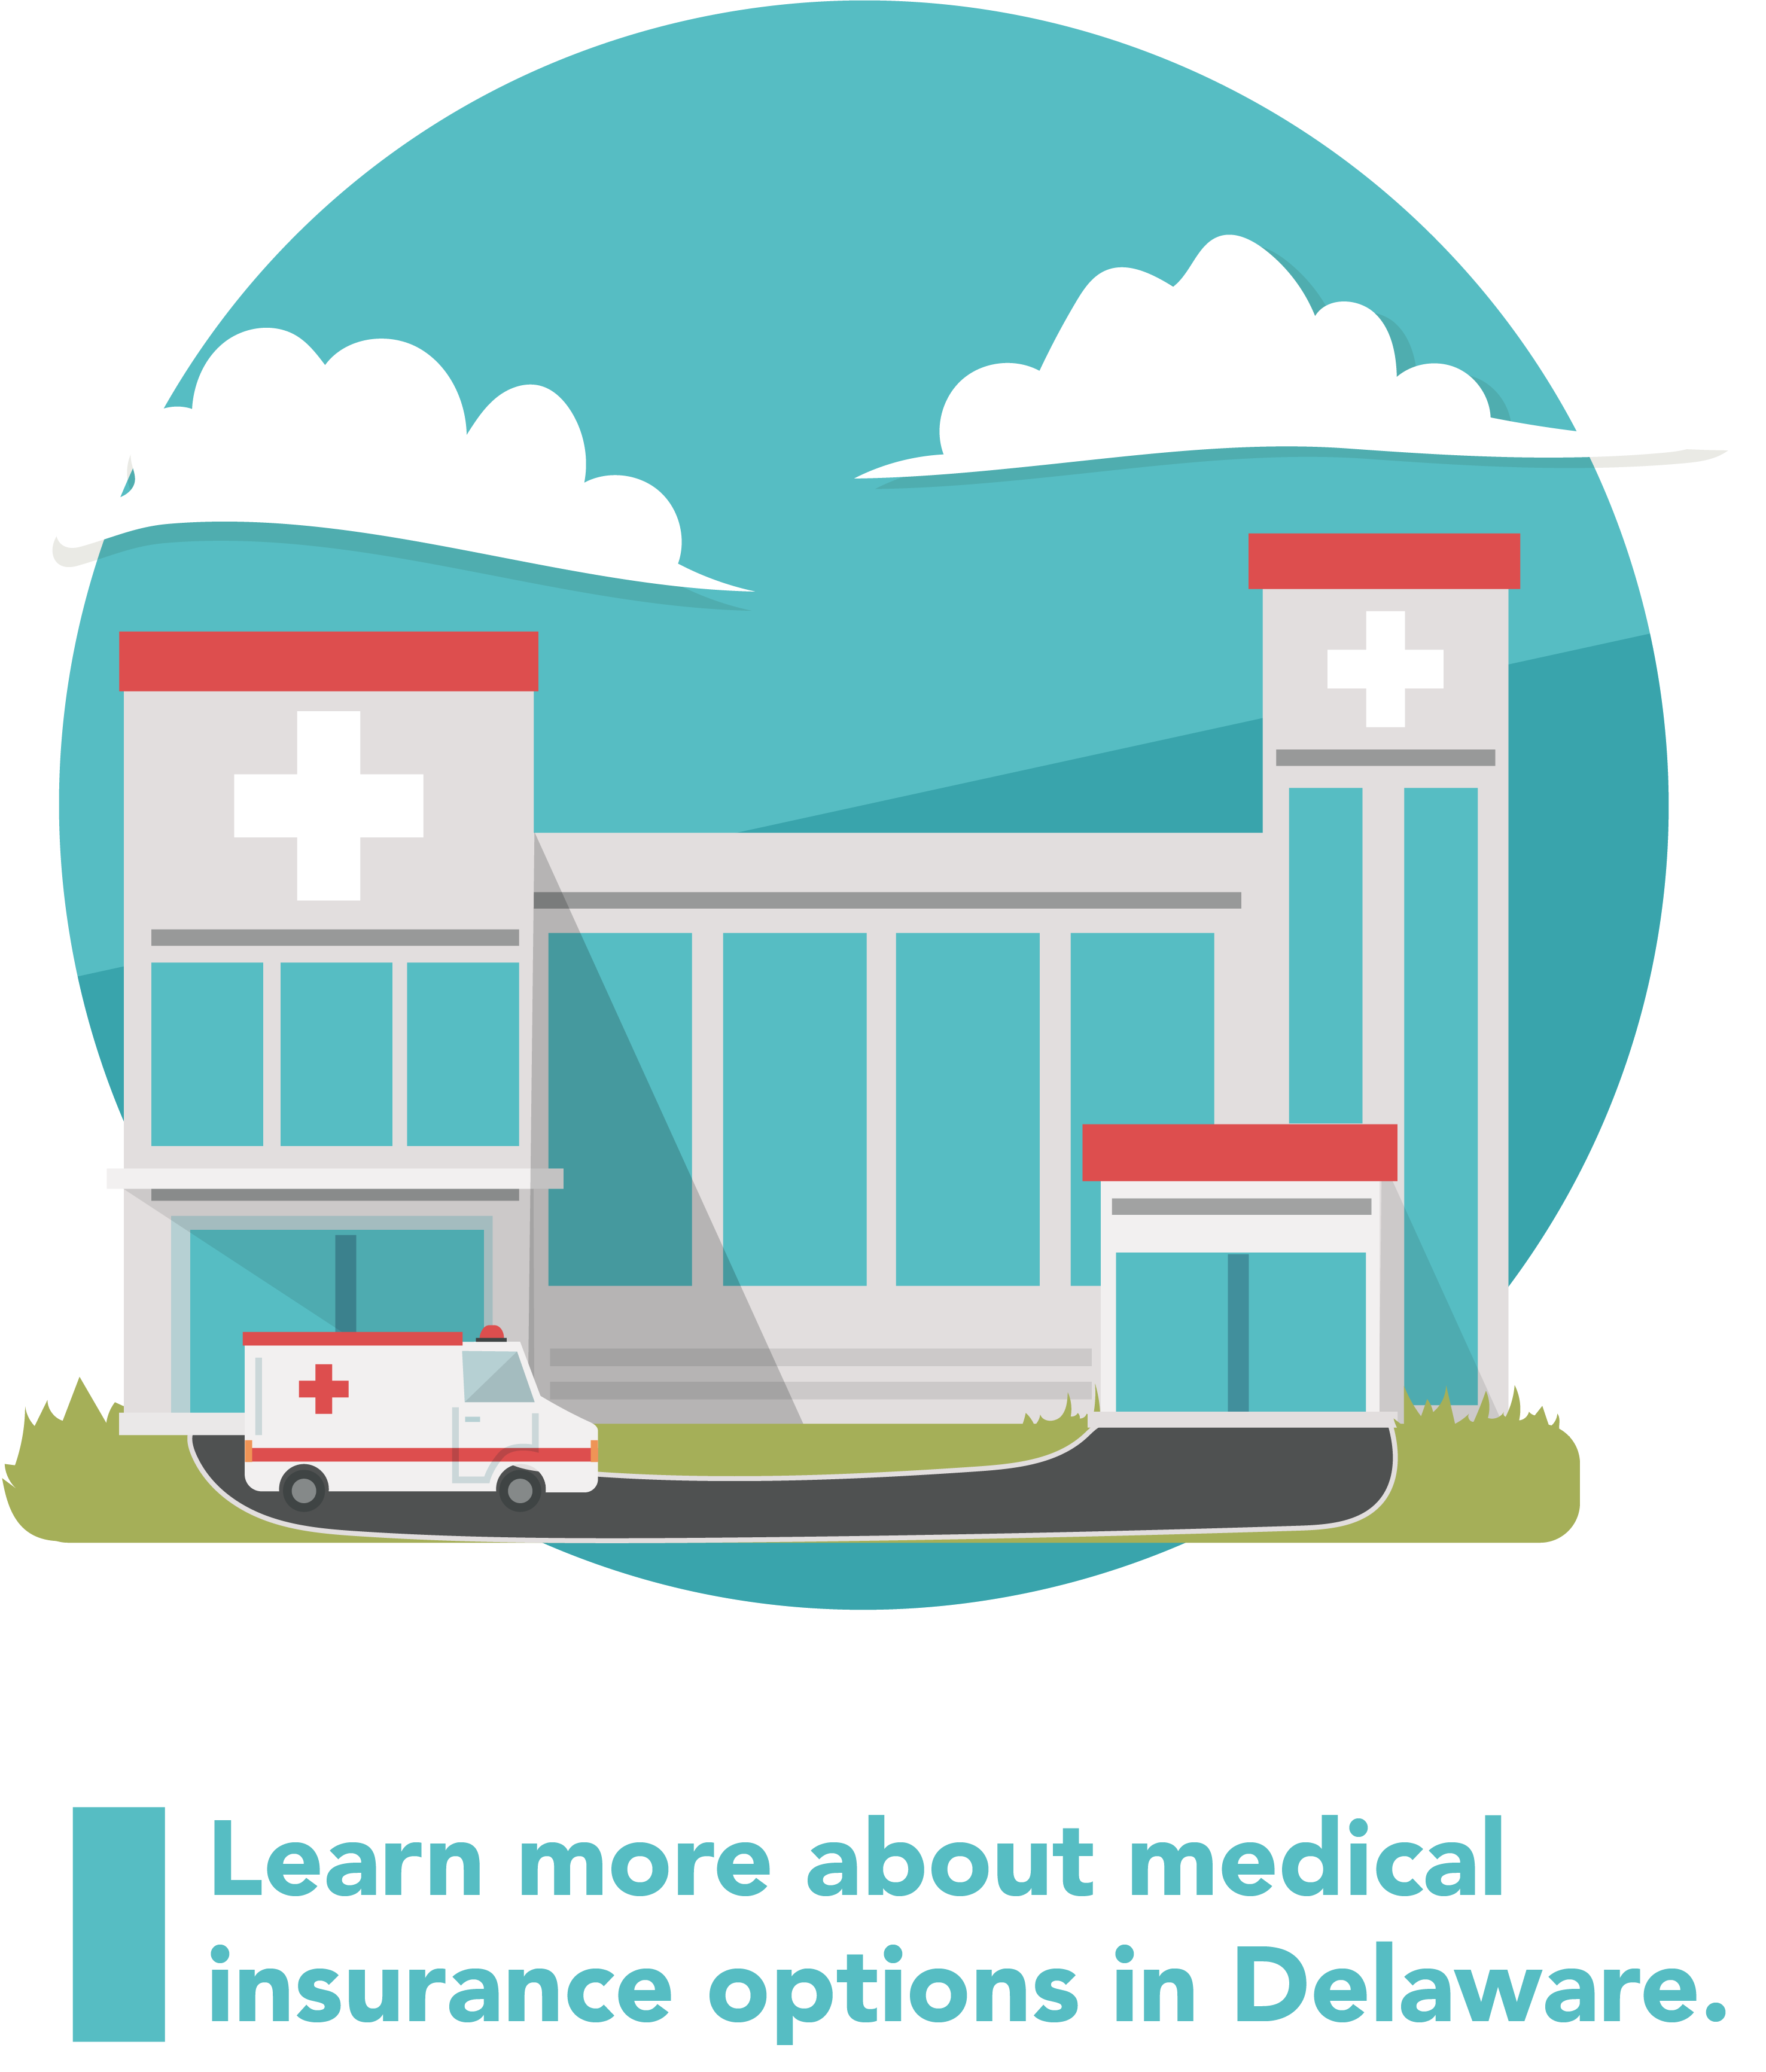 Graphic of a hospital building and an ambulance.